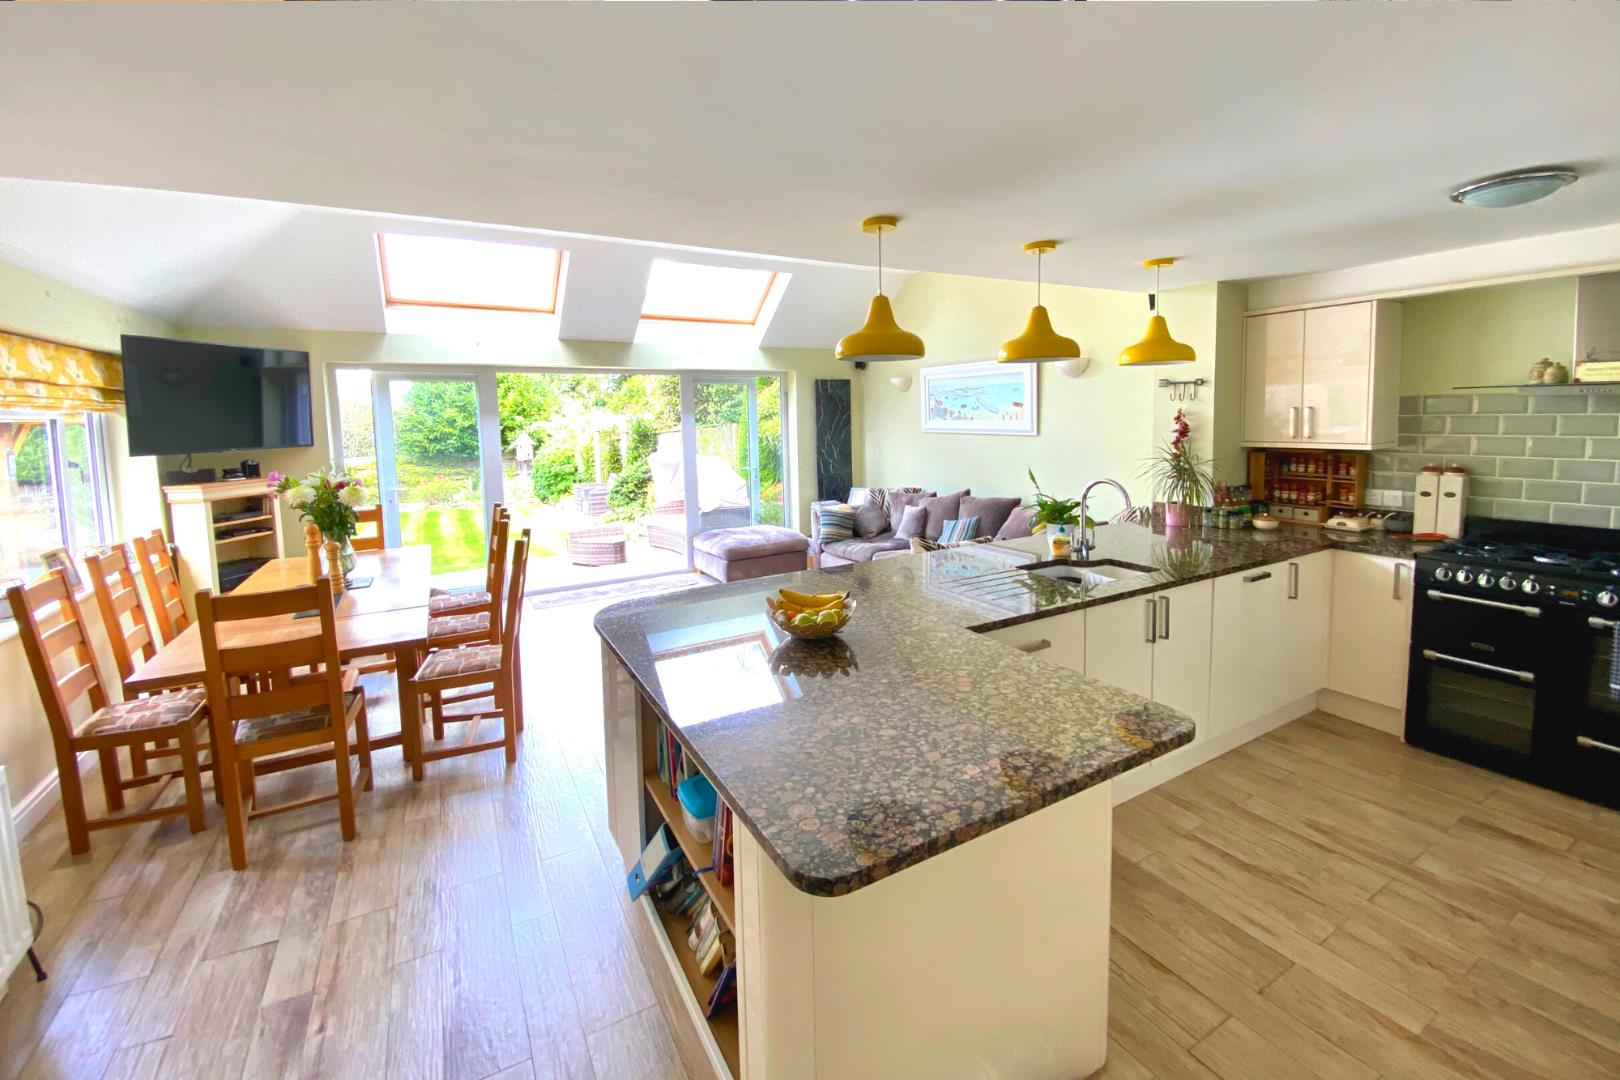 3 bed house for sale in Church Crookham  - Property Image 2